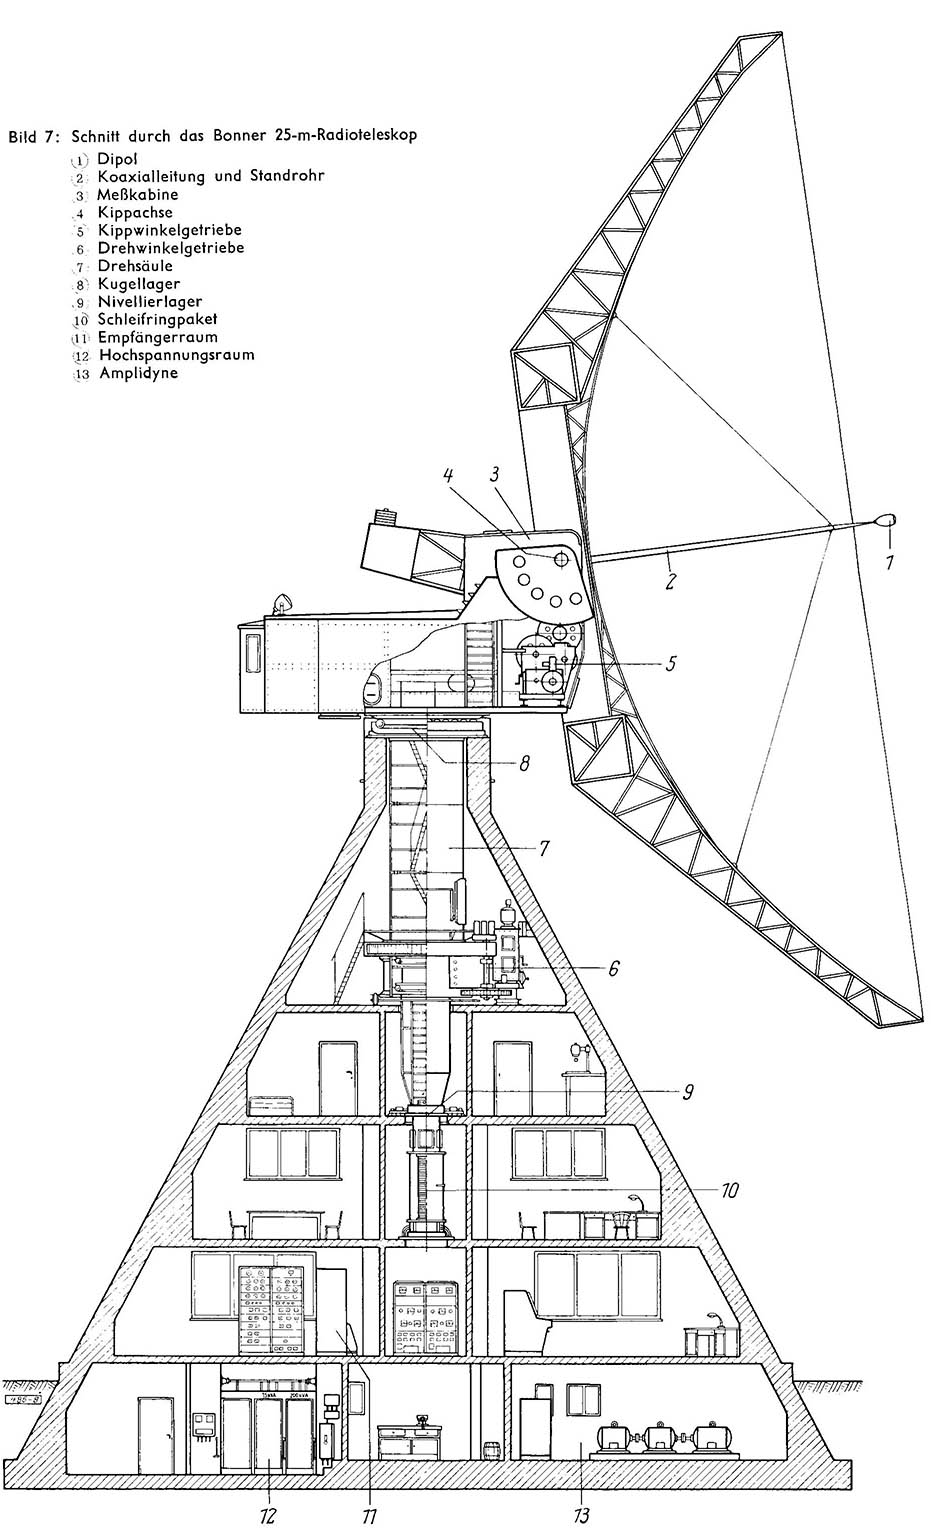 The original technical drawing of the 25m Stockert